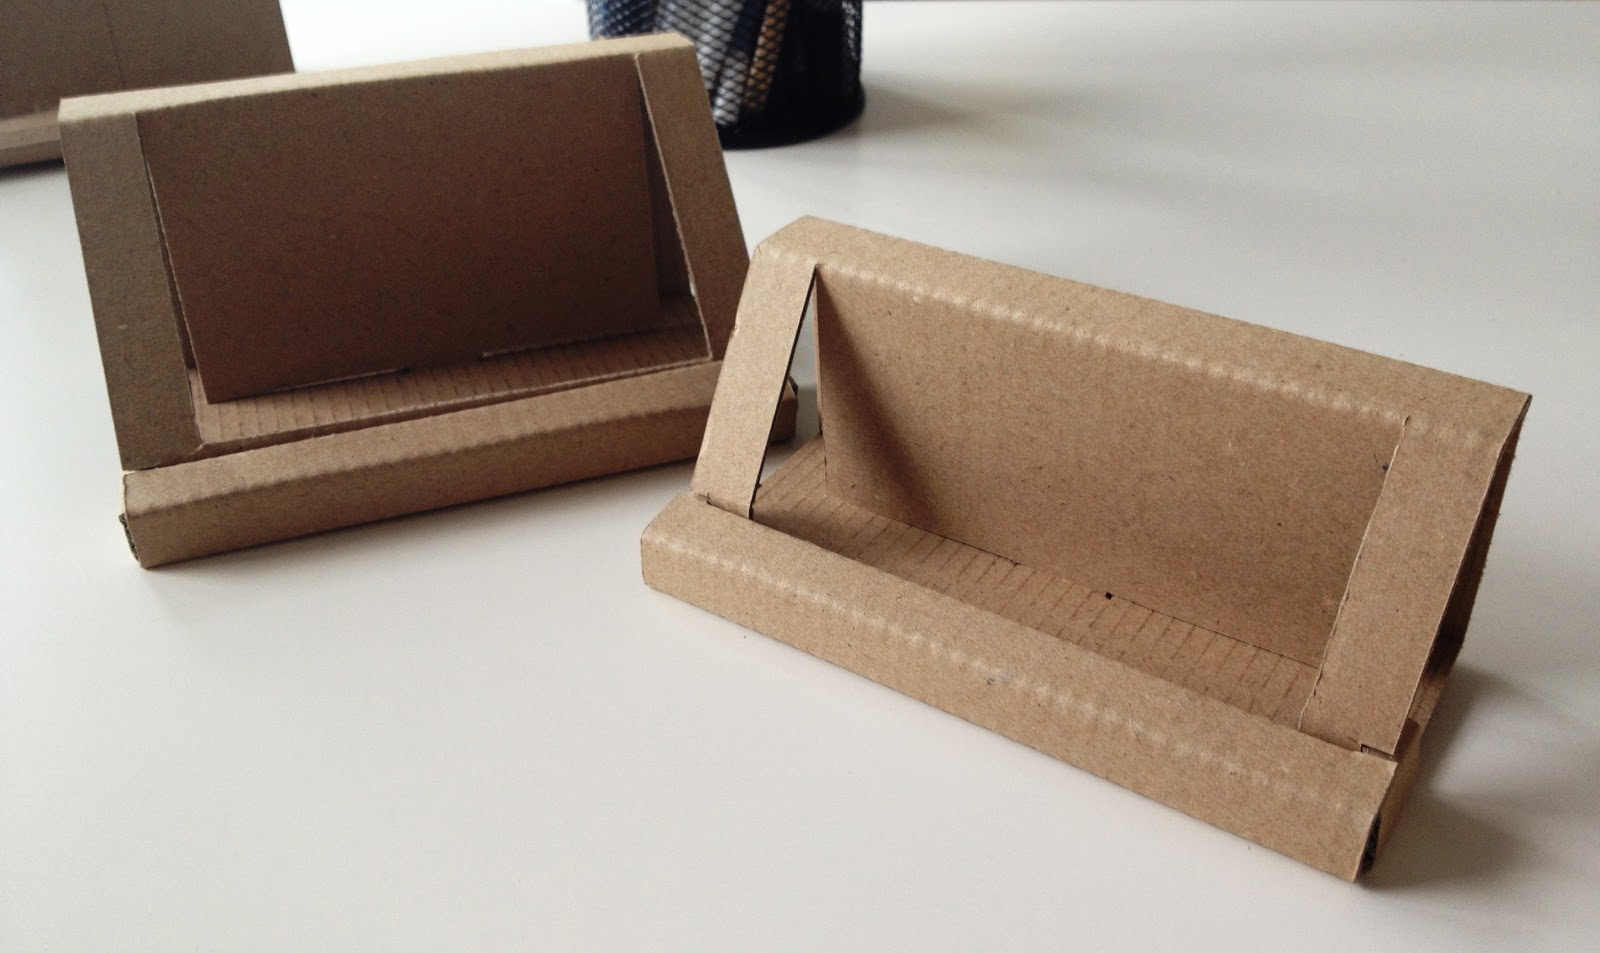 Runaway prototype design cardboard business card holder reloaded cardboard business card holder reloaded flashek Image collections